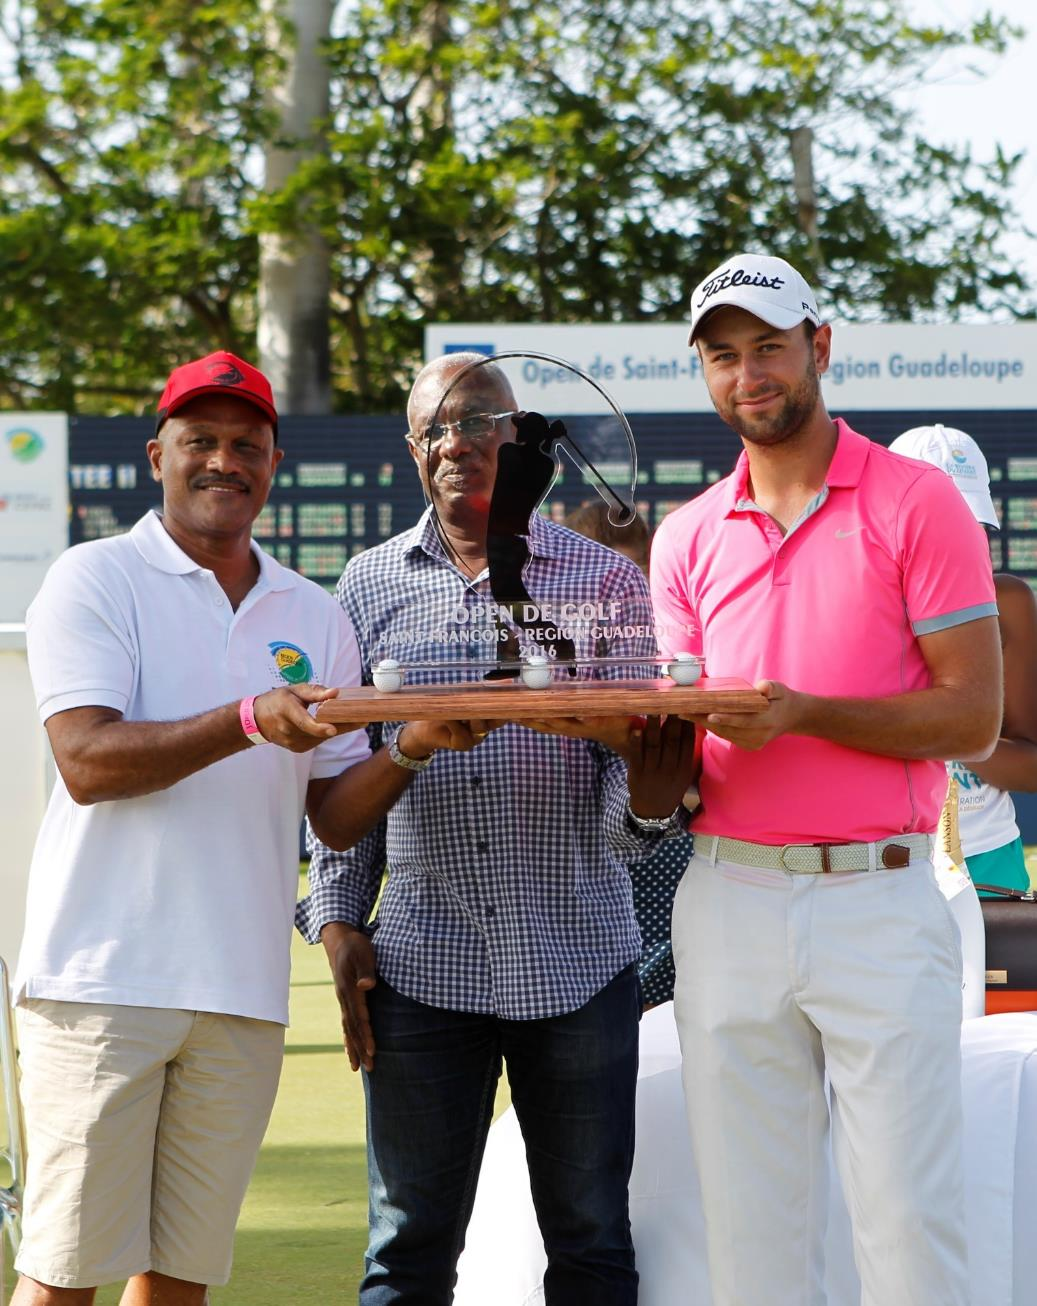 Léo Lespinasse 2016 Open guadeloupe